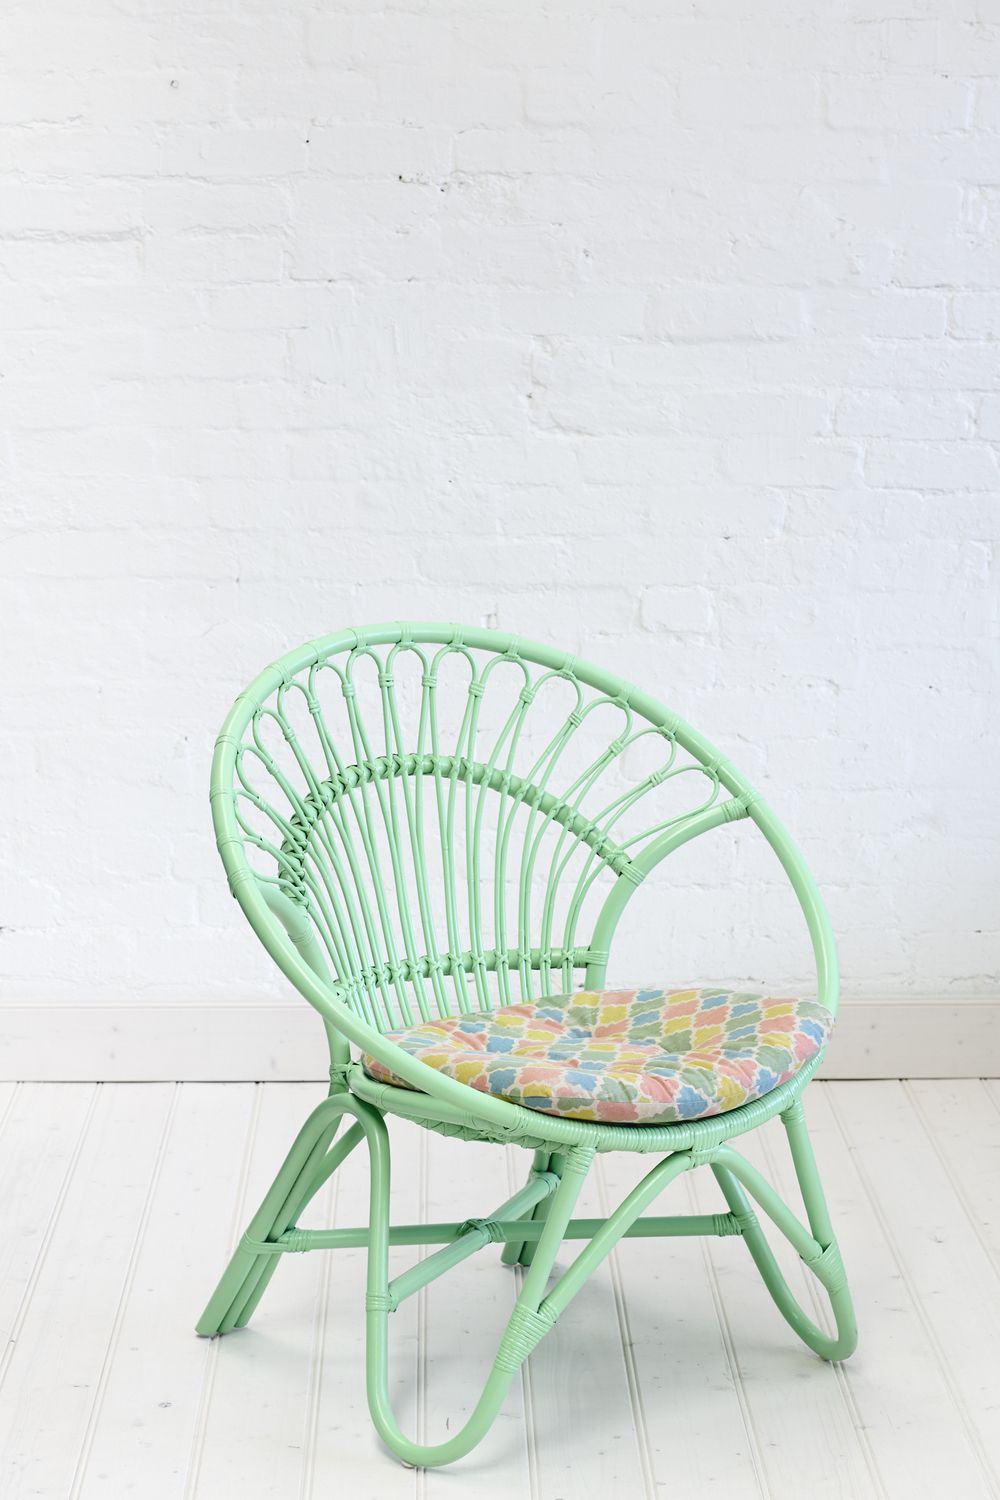 Rattan Wall Decor Round : Rattan round chair pastel green kids decor nursery